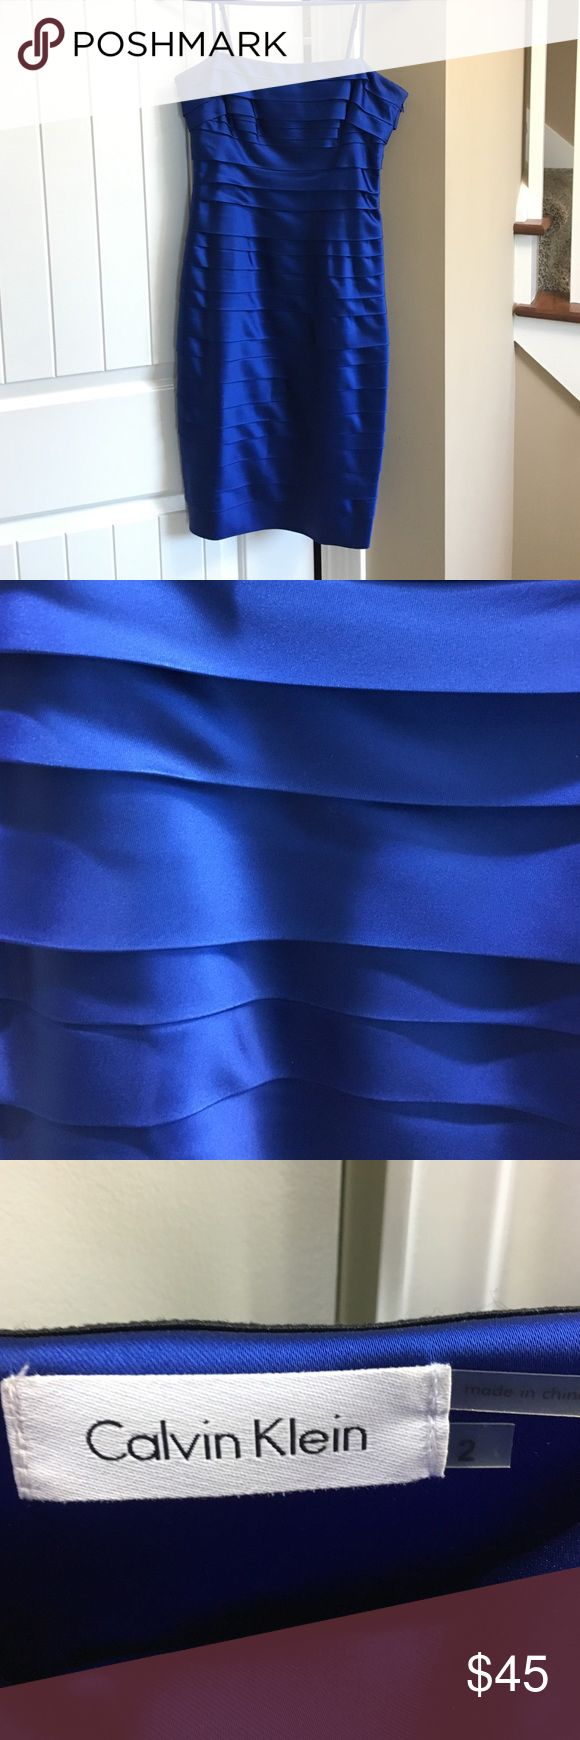 Calvin Klein Blue Dress Worn once. Removable and adjustable spaghetti straps. Side zipper. Royal blue. High quality dress. Silky satin. Holds form well. From smoke free and pet free home. Calvin Klein Dresses Midi